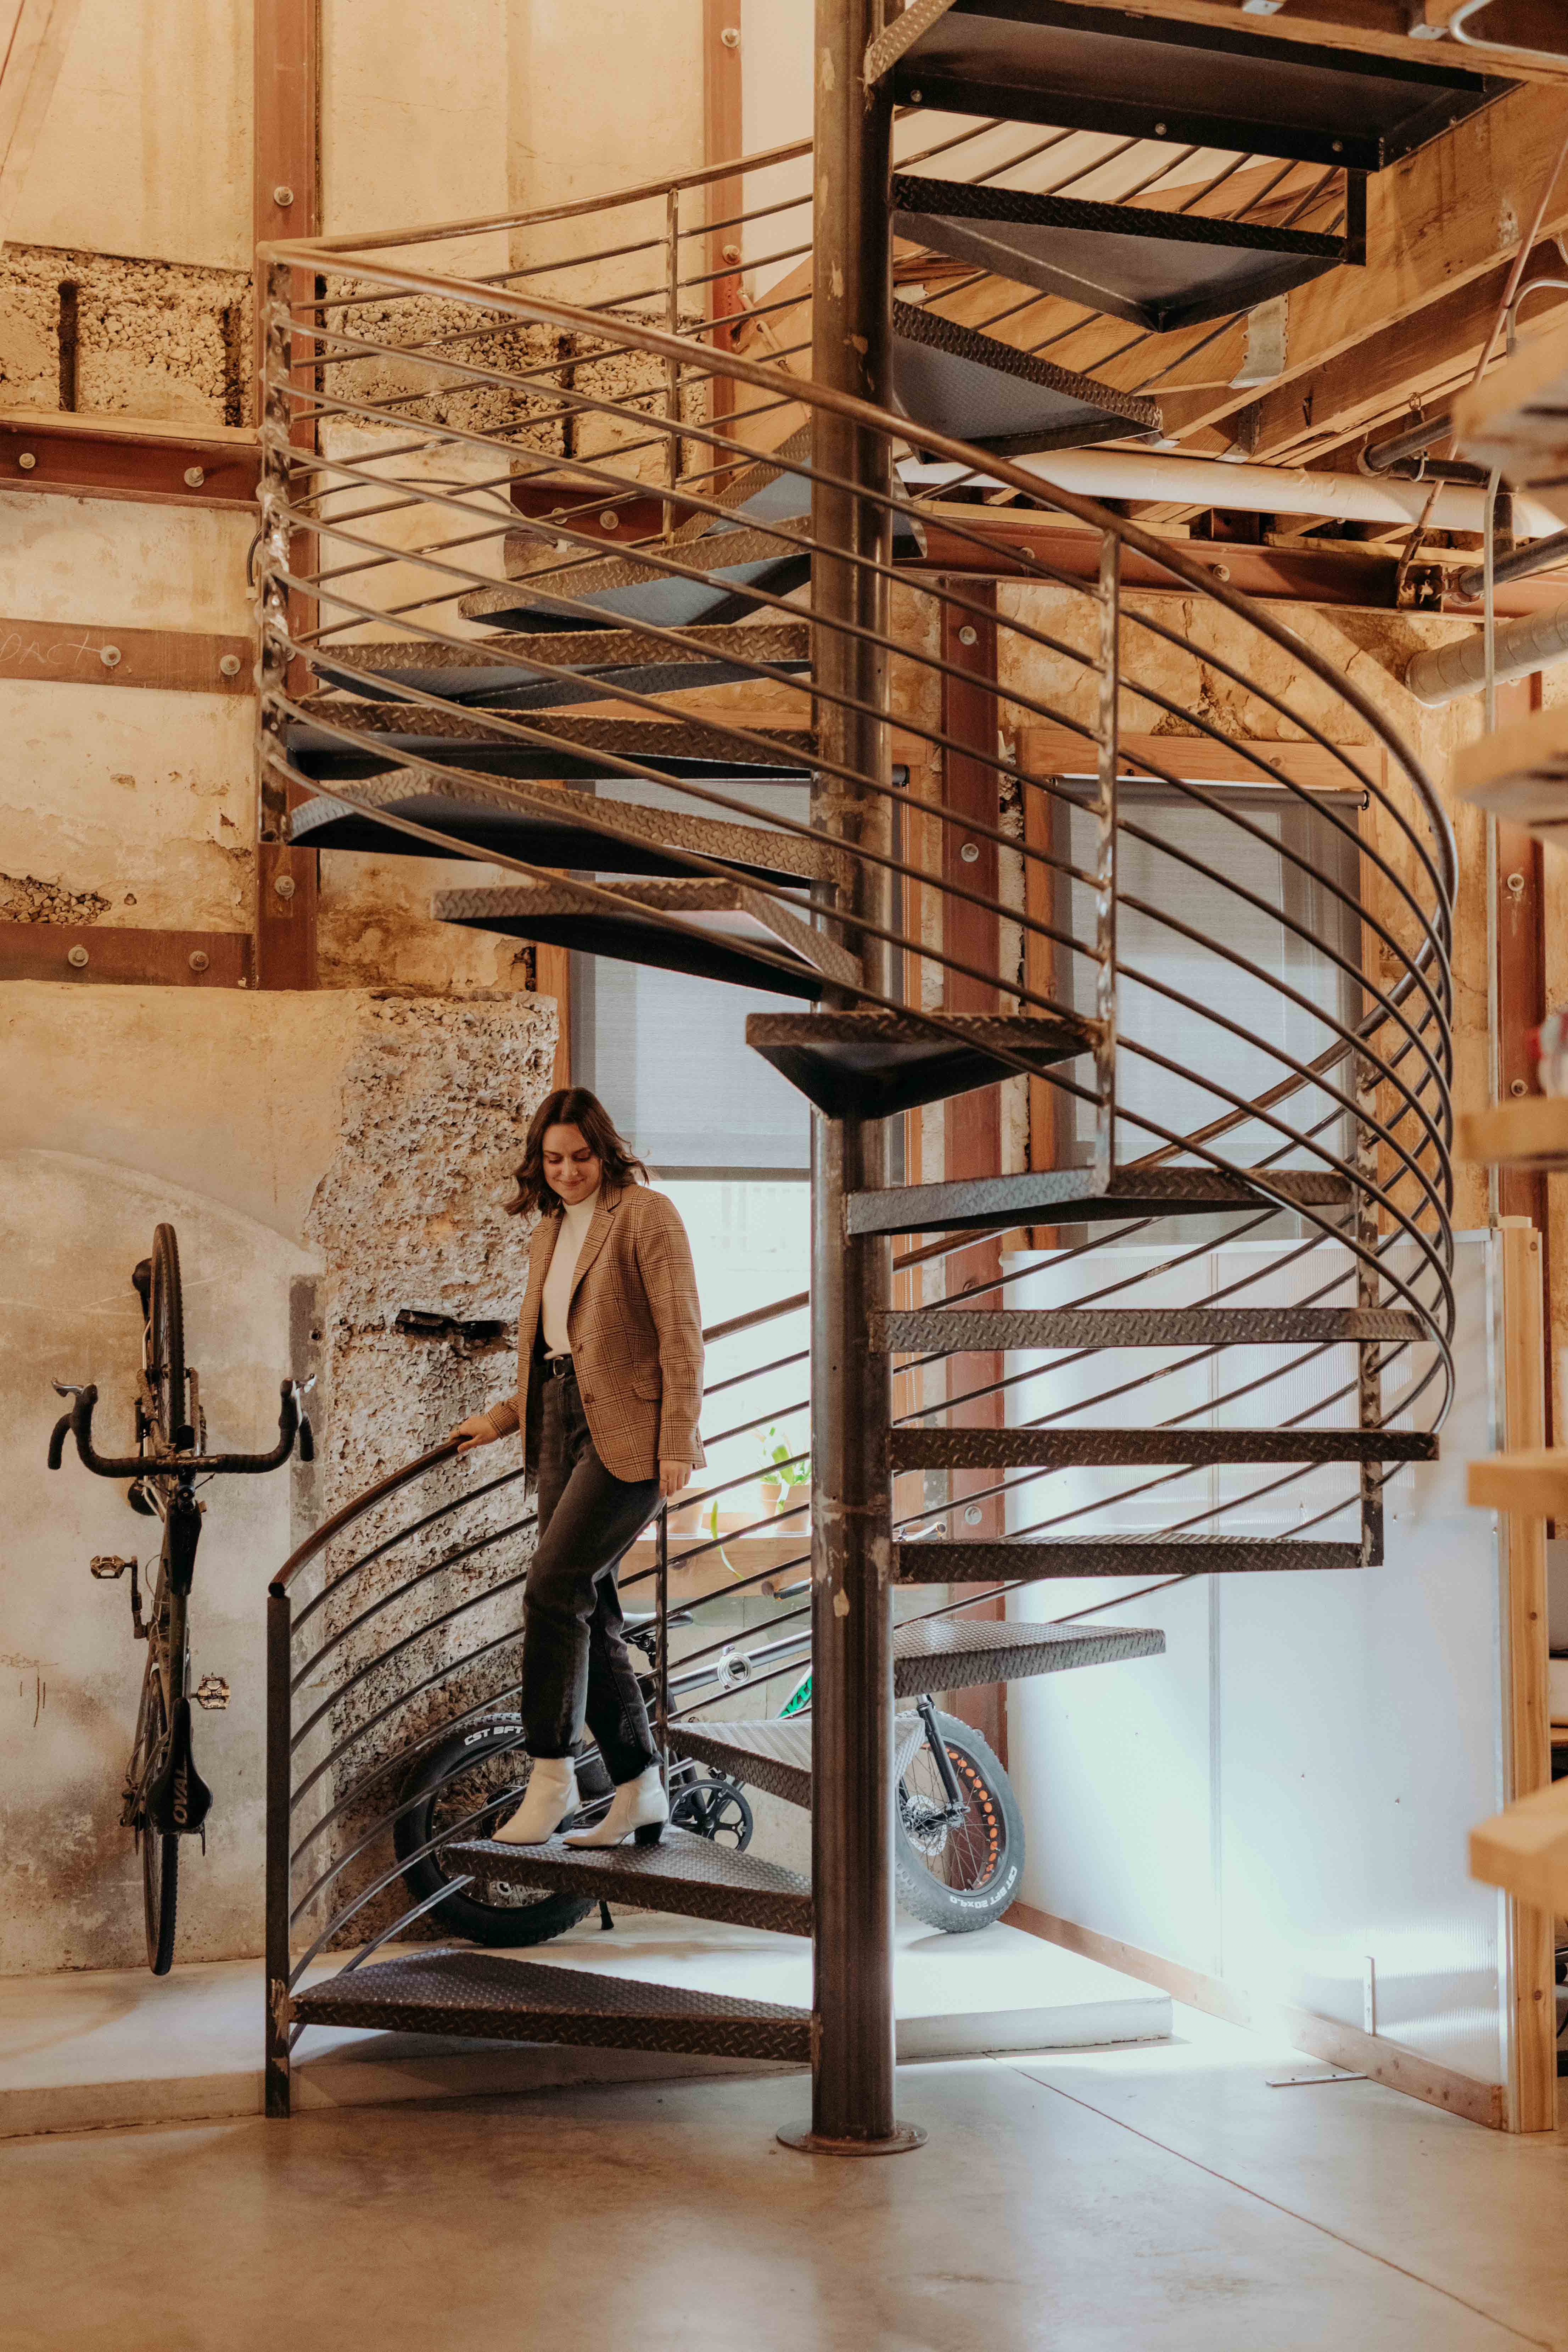 A whiteboard employee ascends the spiral staircase at the office.